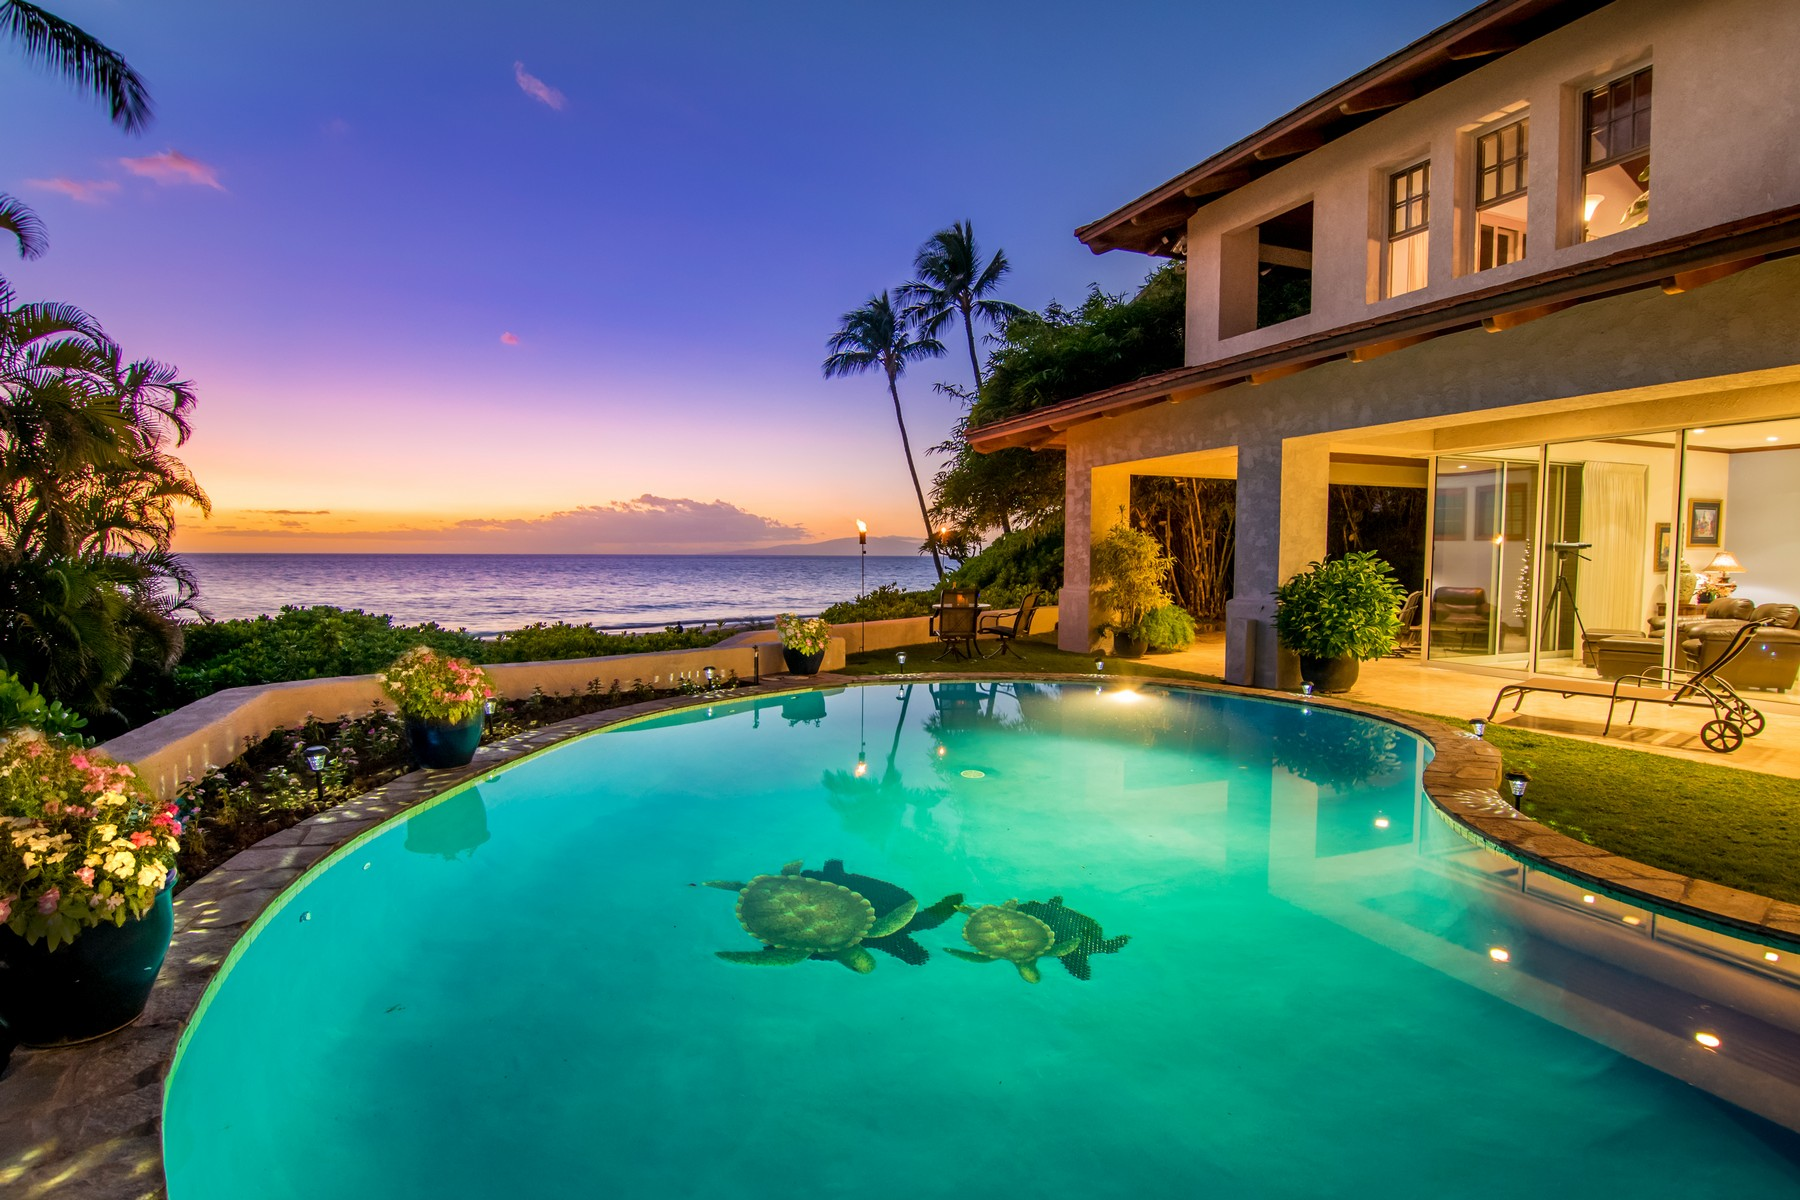 Moradia para Venda às Elegant Oceanfront Estate On Maui's Finest Sandy Beach 3002 South Kihei Road Kihei, Havaí, 96753 Estados Unidos